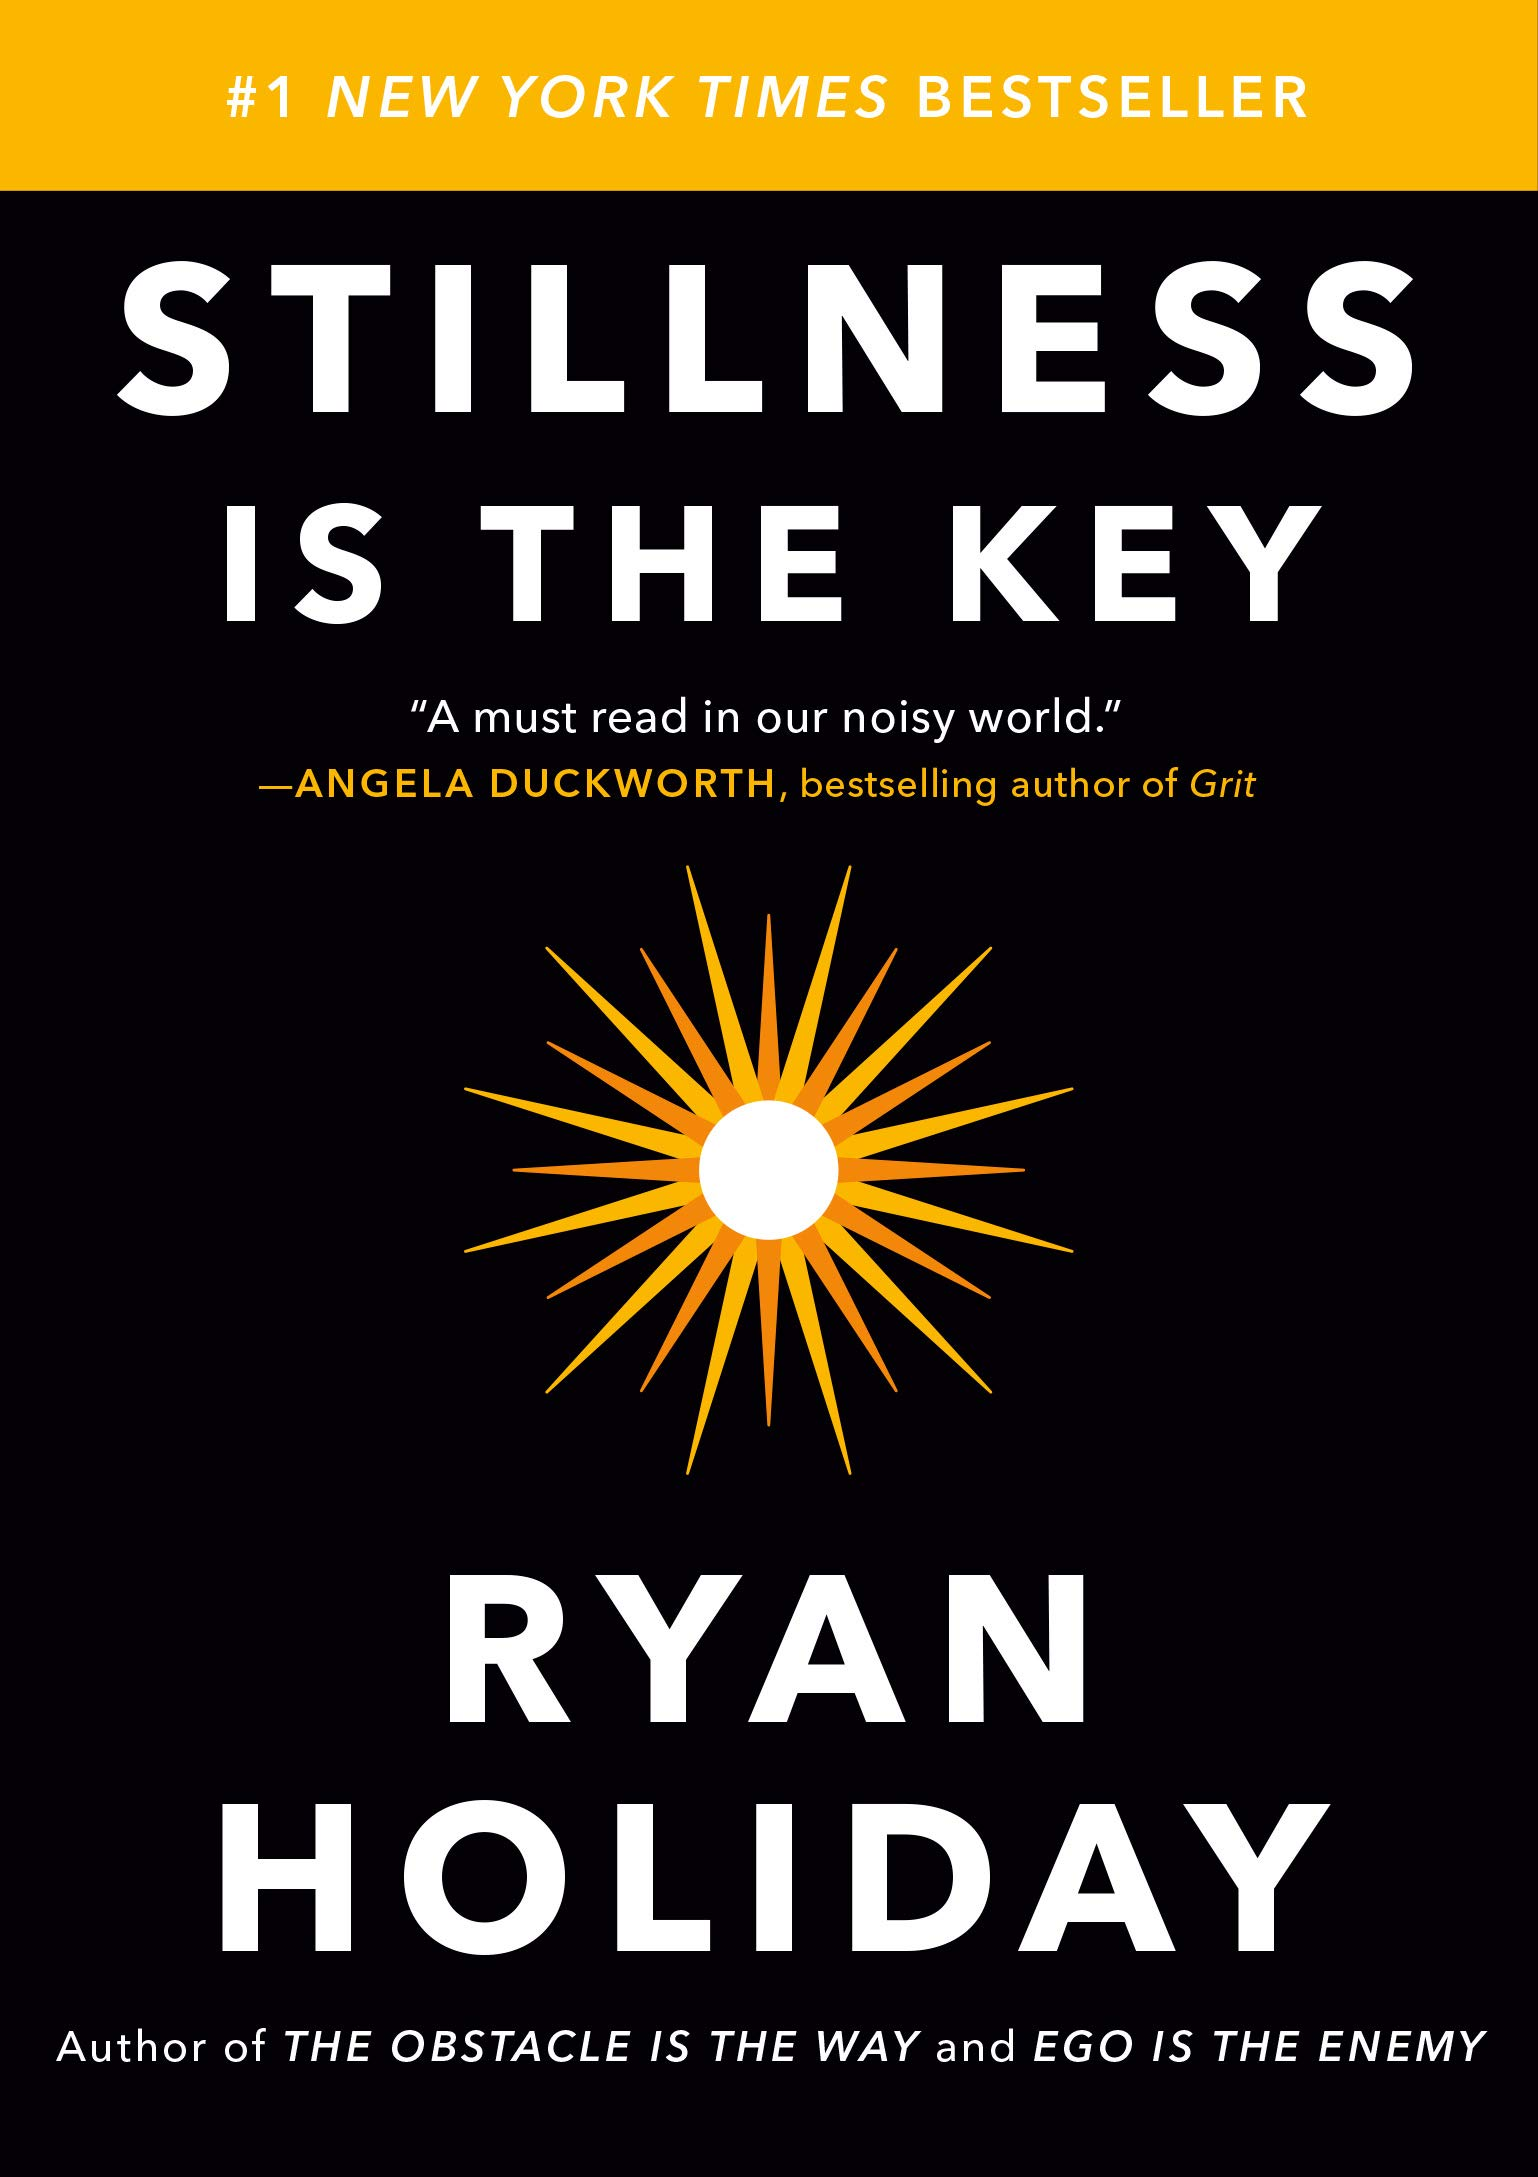 """Book cover of """"Stillness is the key"""" by Ryan Holiday."""